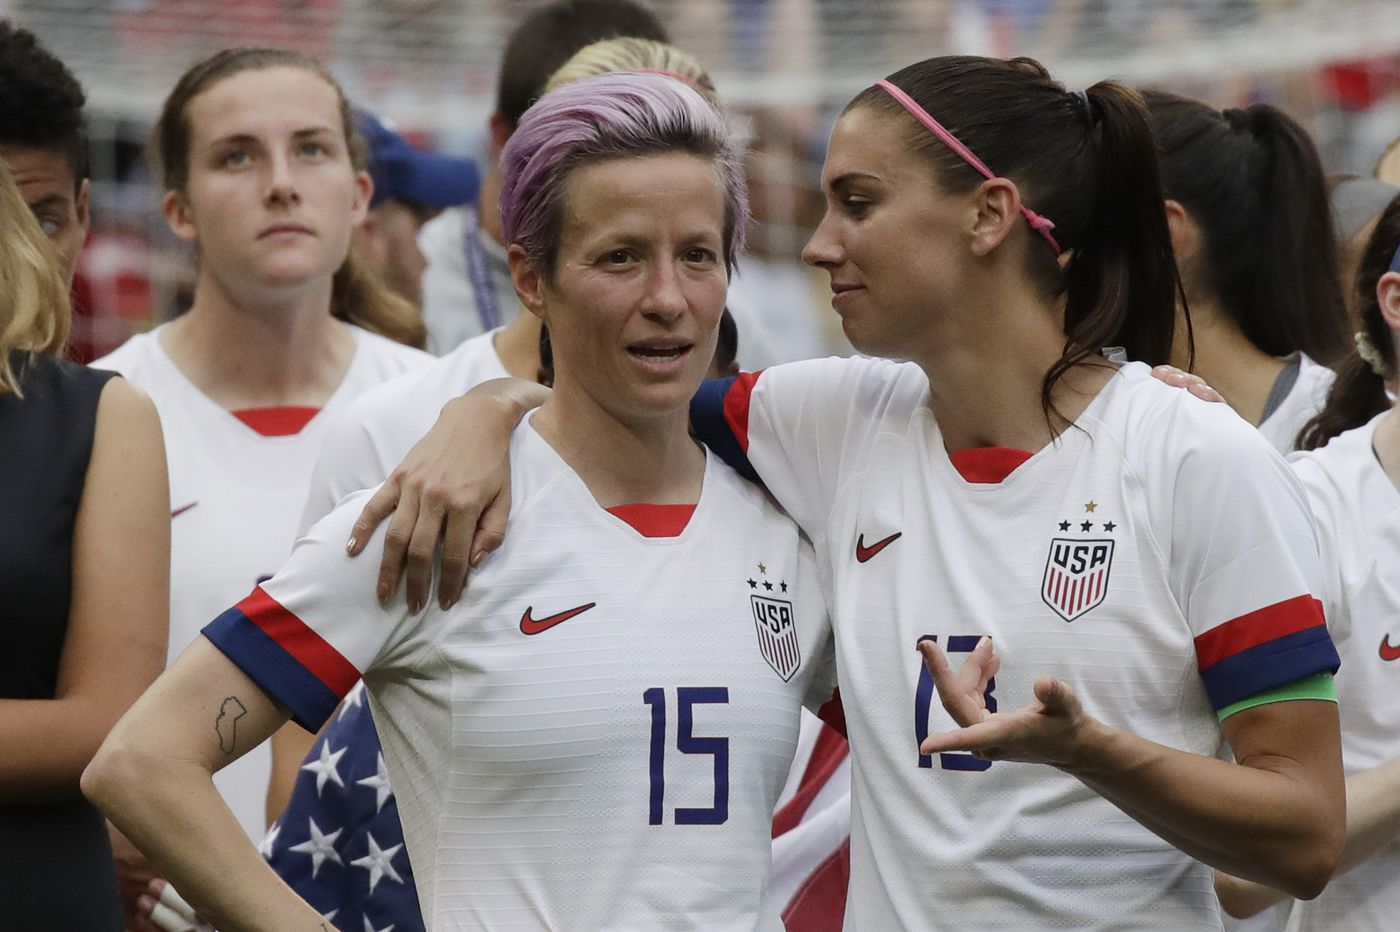 U.S. women's soccer players ask for equal pay lawsuit appeal, trial delay